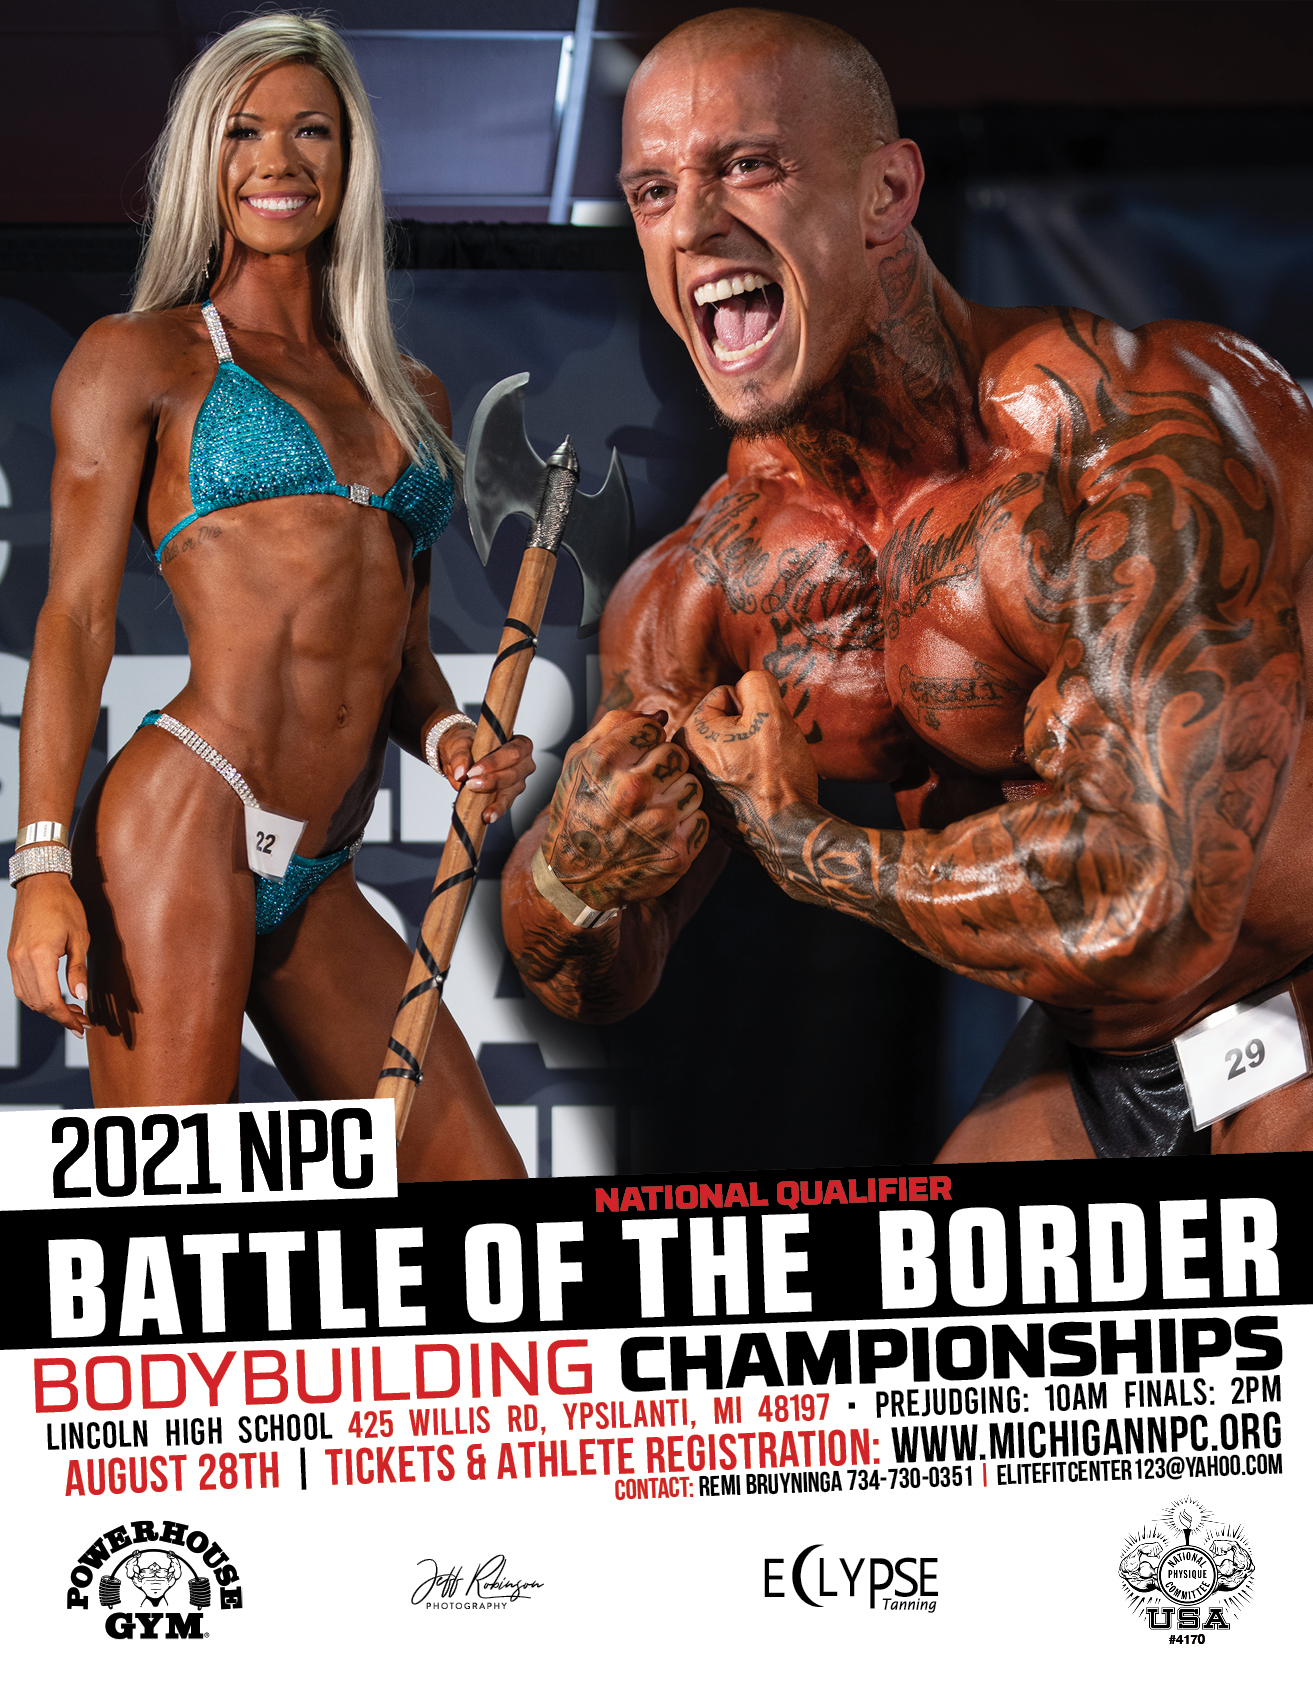 2021 NPC Battle of the Boarder Poster